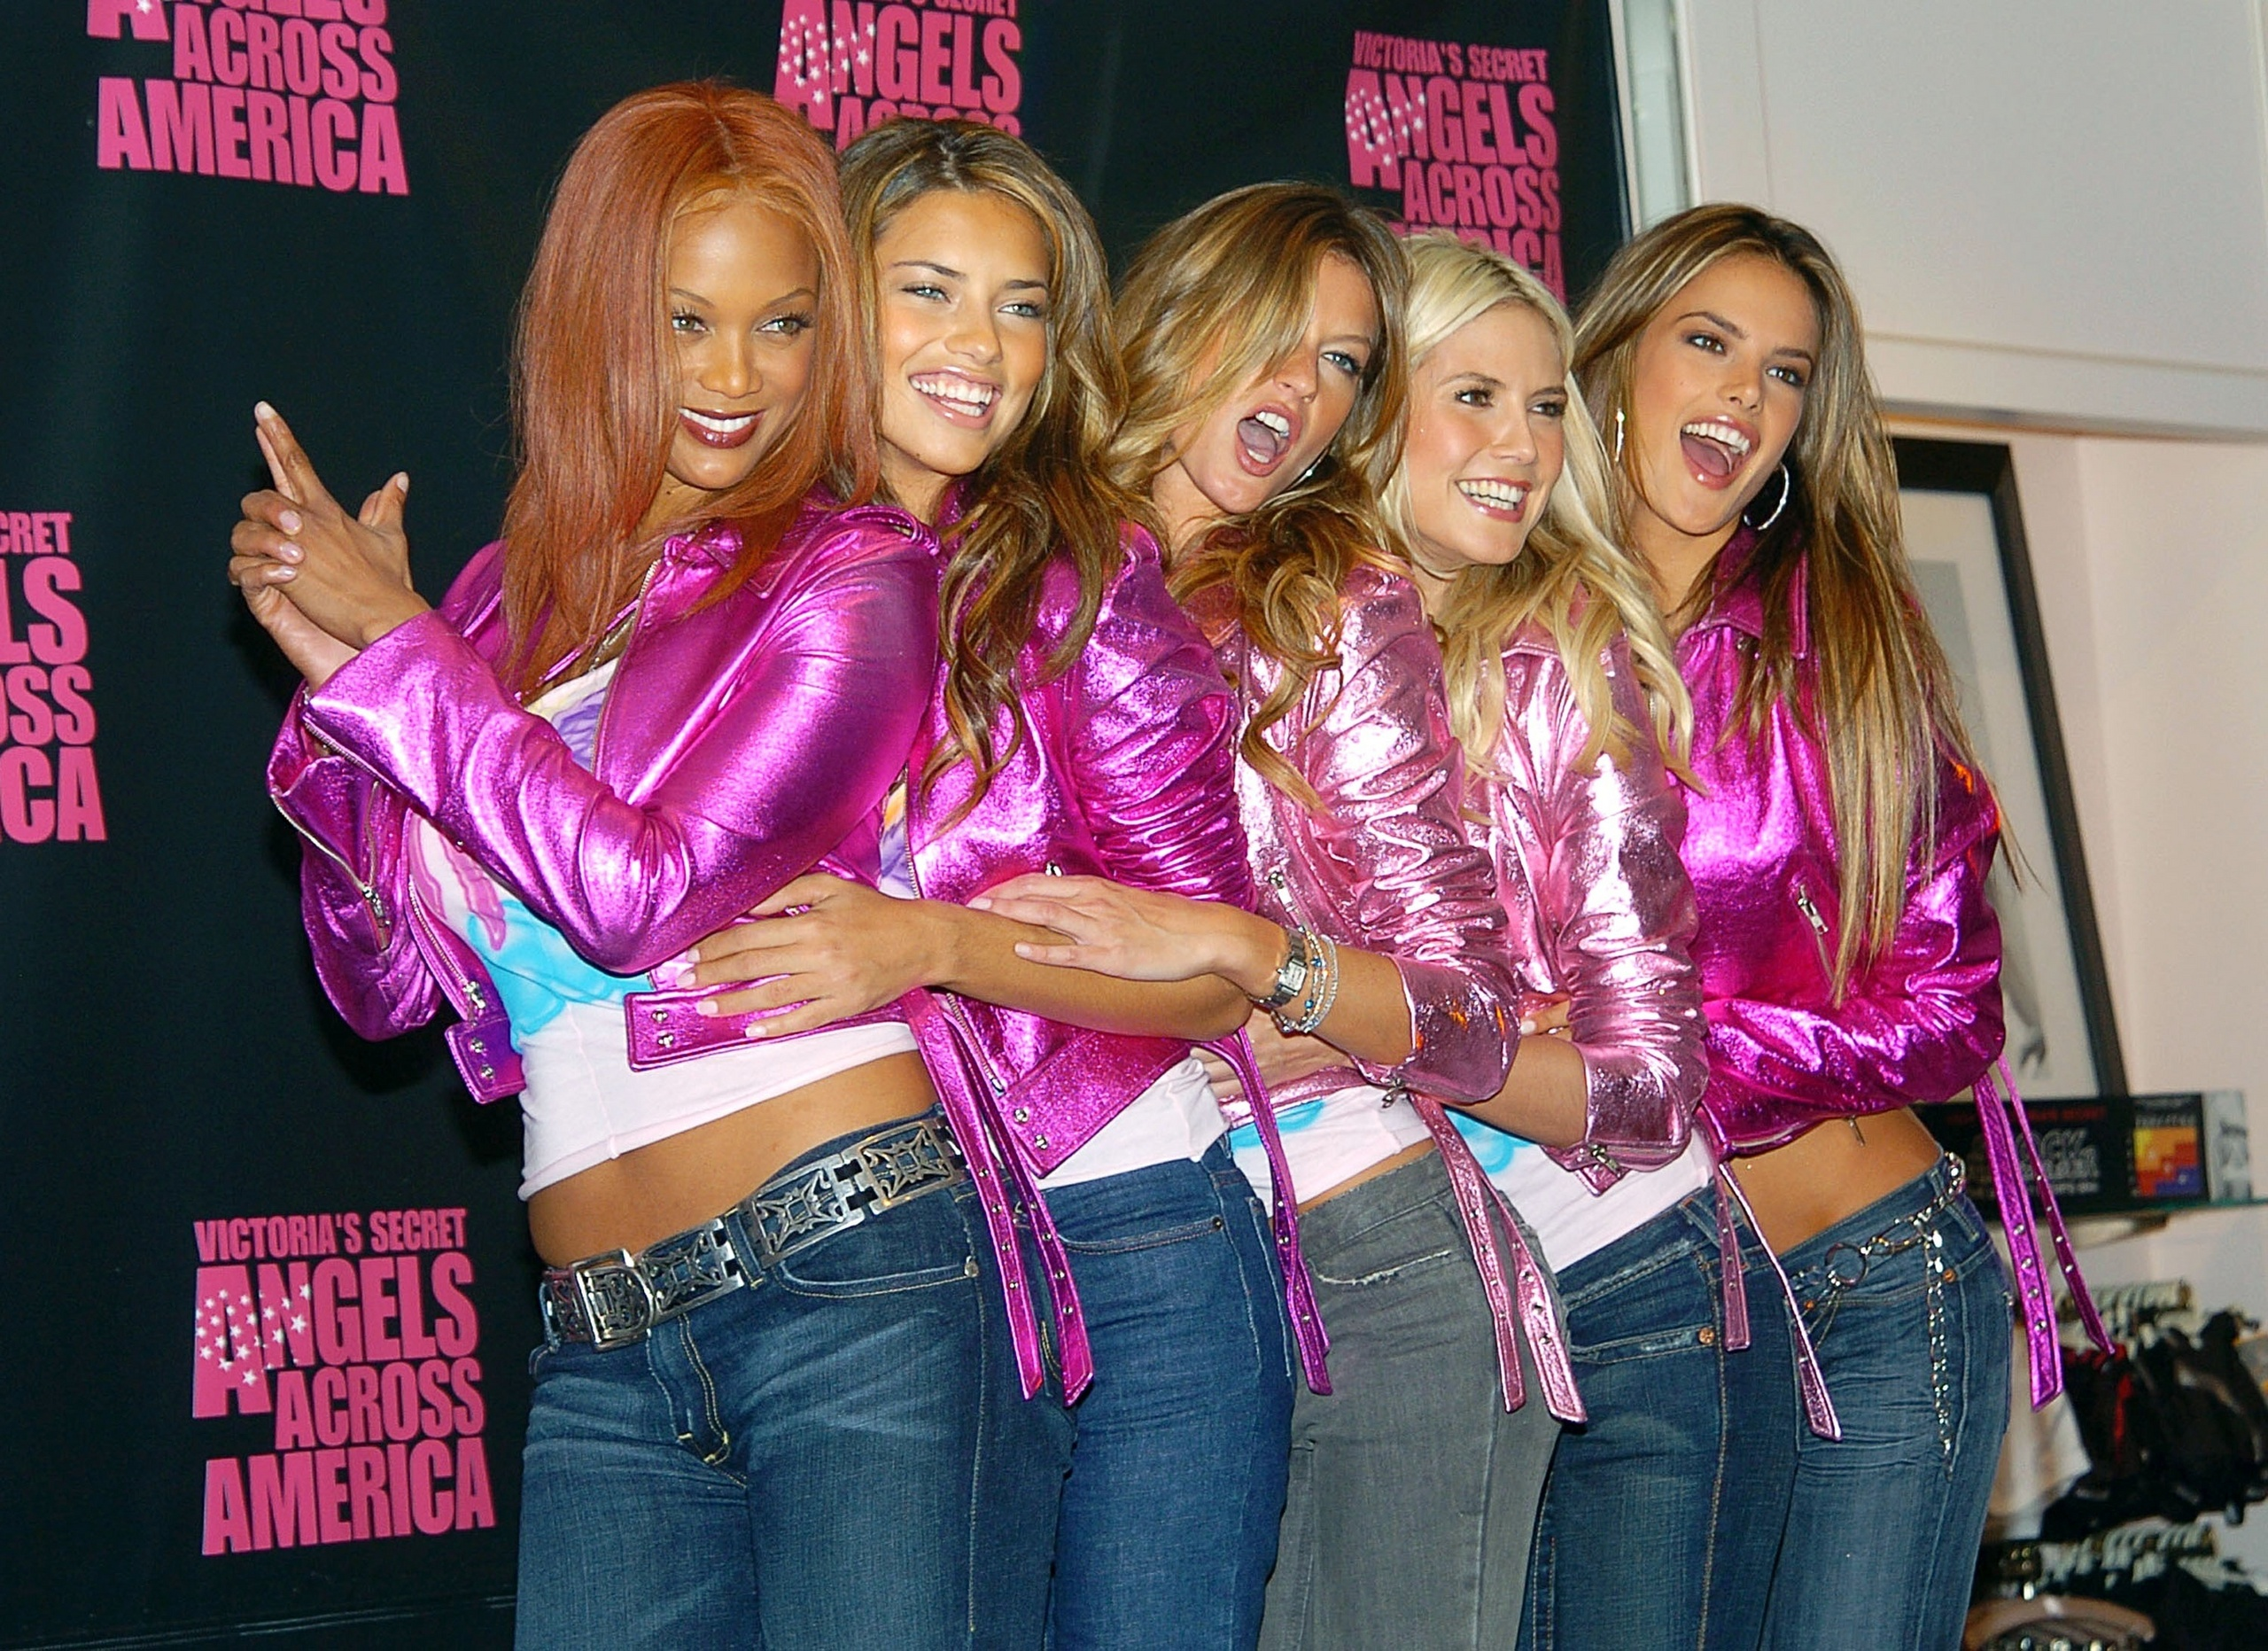 15 Things You Didn't Know About Victoria's Secret | From left to right: Tyra Banks, Adriana Lima, Gisele Bündchen, Heidi Klum and Alessandra Ambrosio